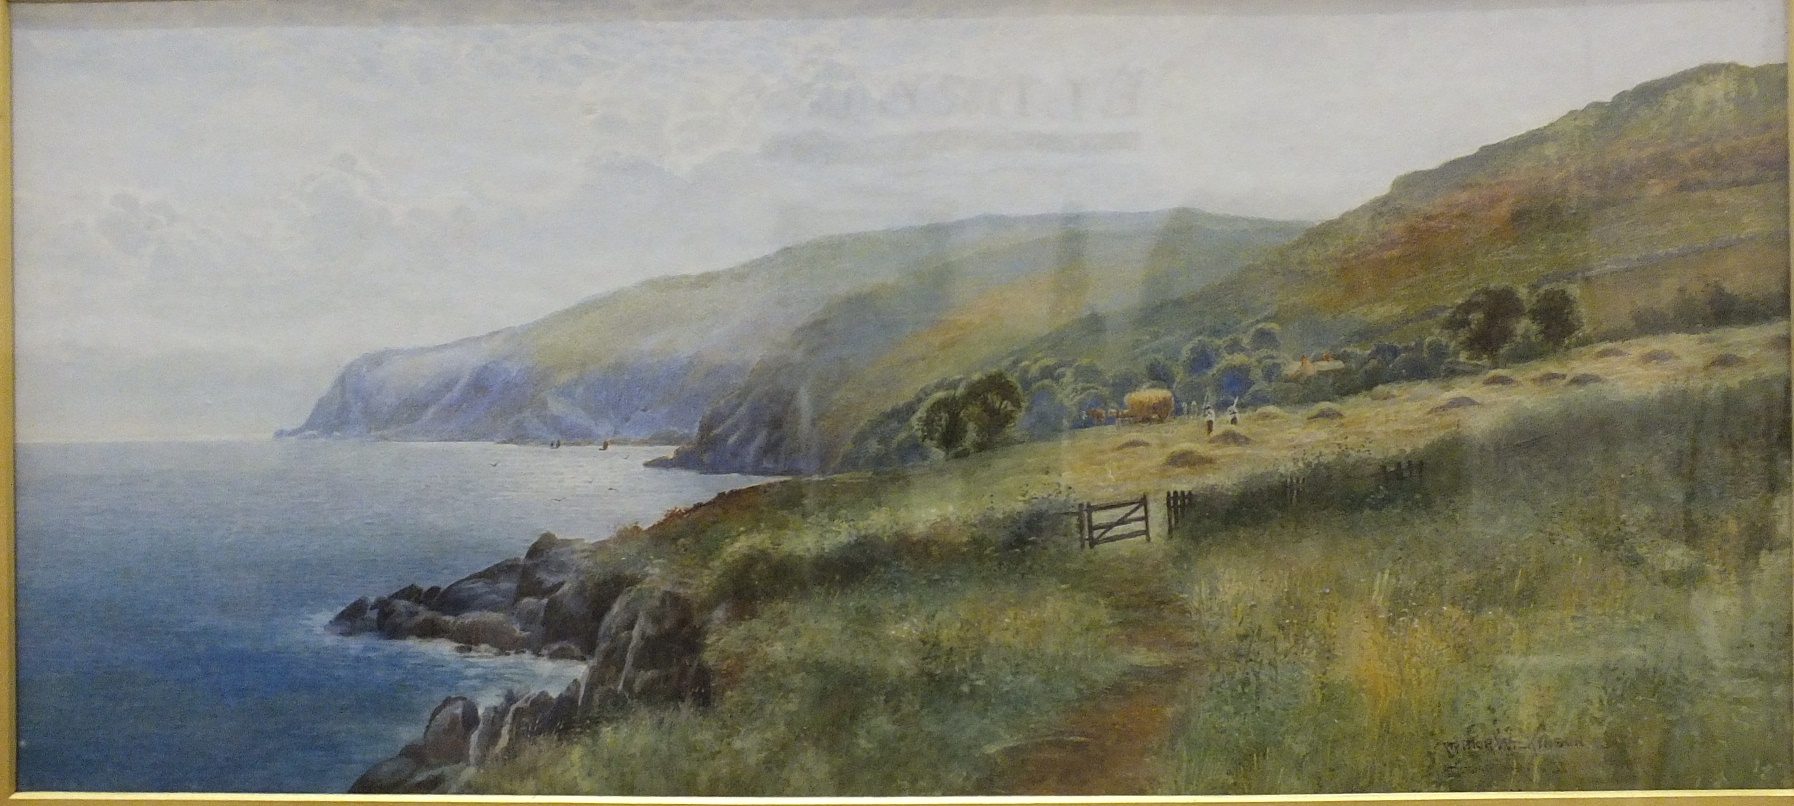 Lot 94 - Arthur Wilkinson (1860-1930) AT COOMBE MARTIN, DEVONSHIRE Signed watercolour, dated 1895, 29 x